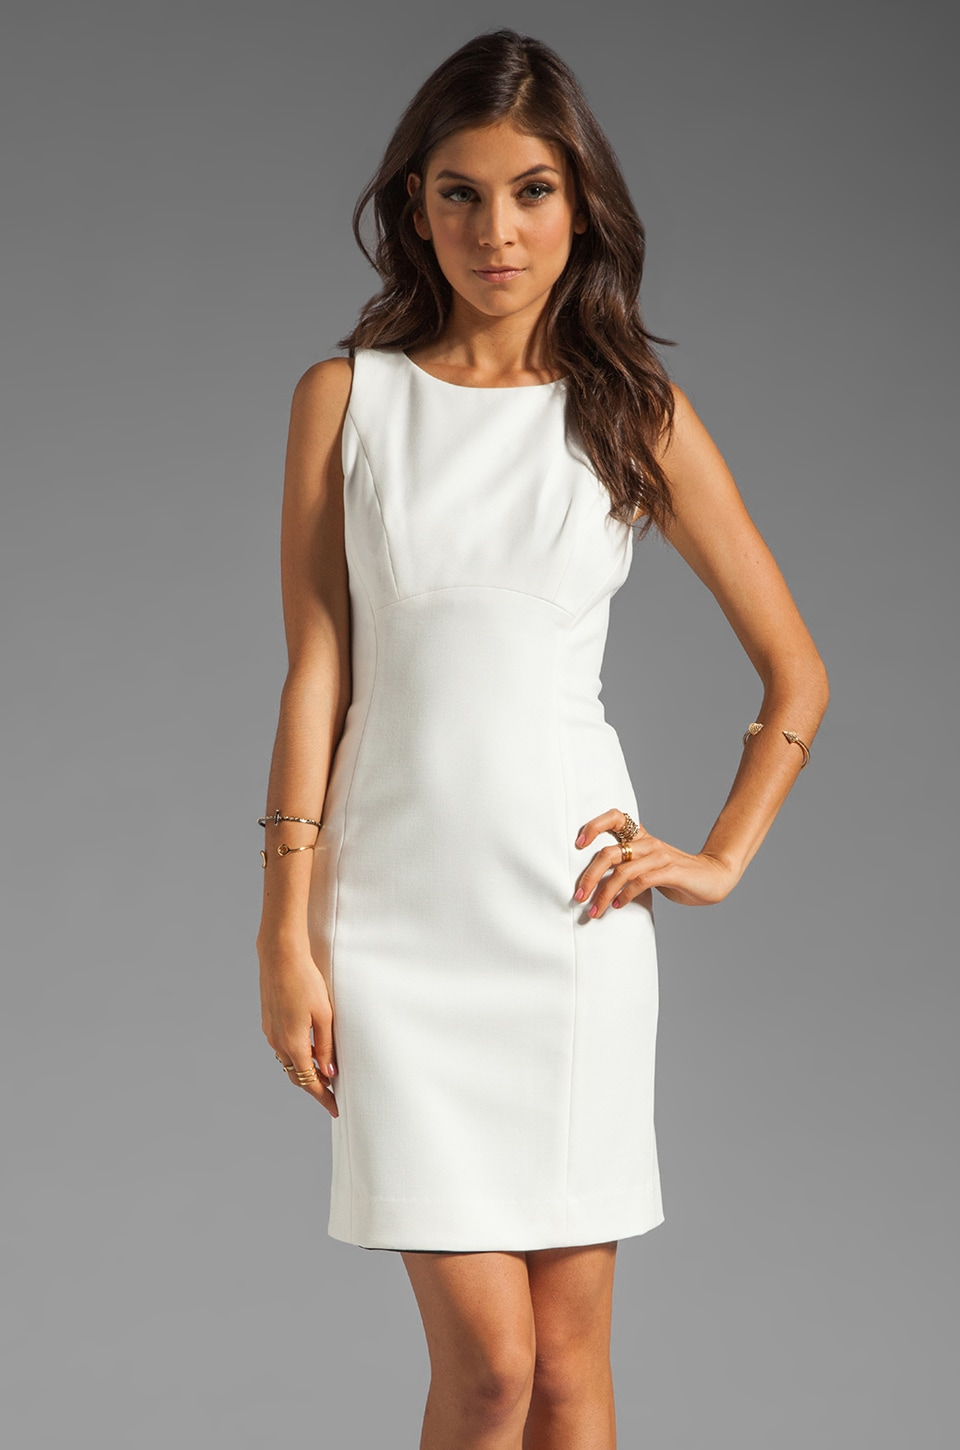 Shoshanna Double Crepe 2 Diana Dress in Winter White